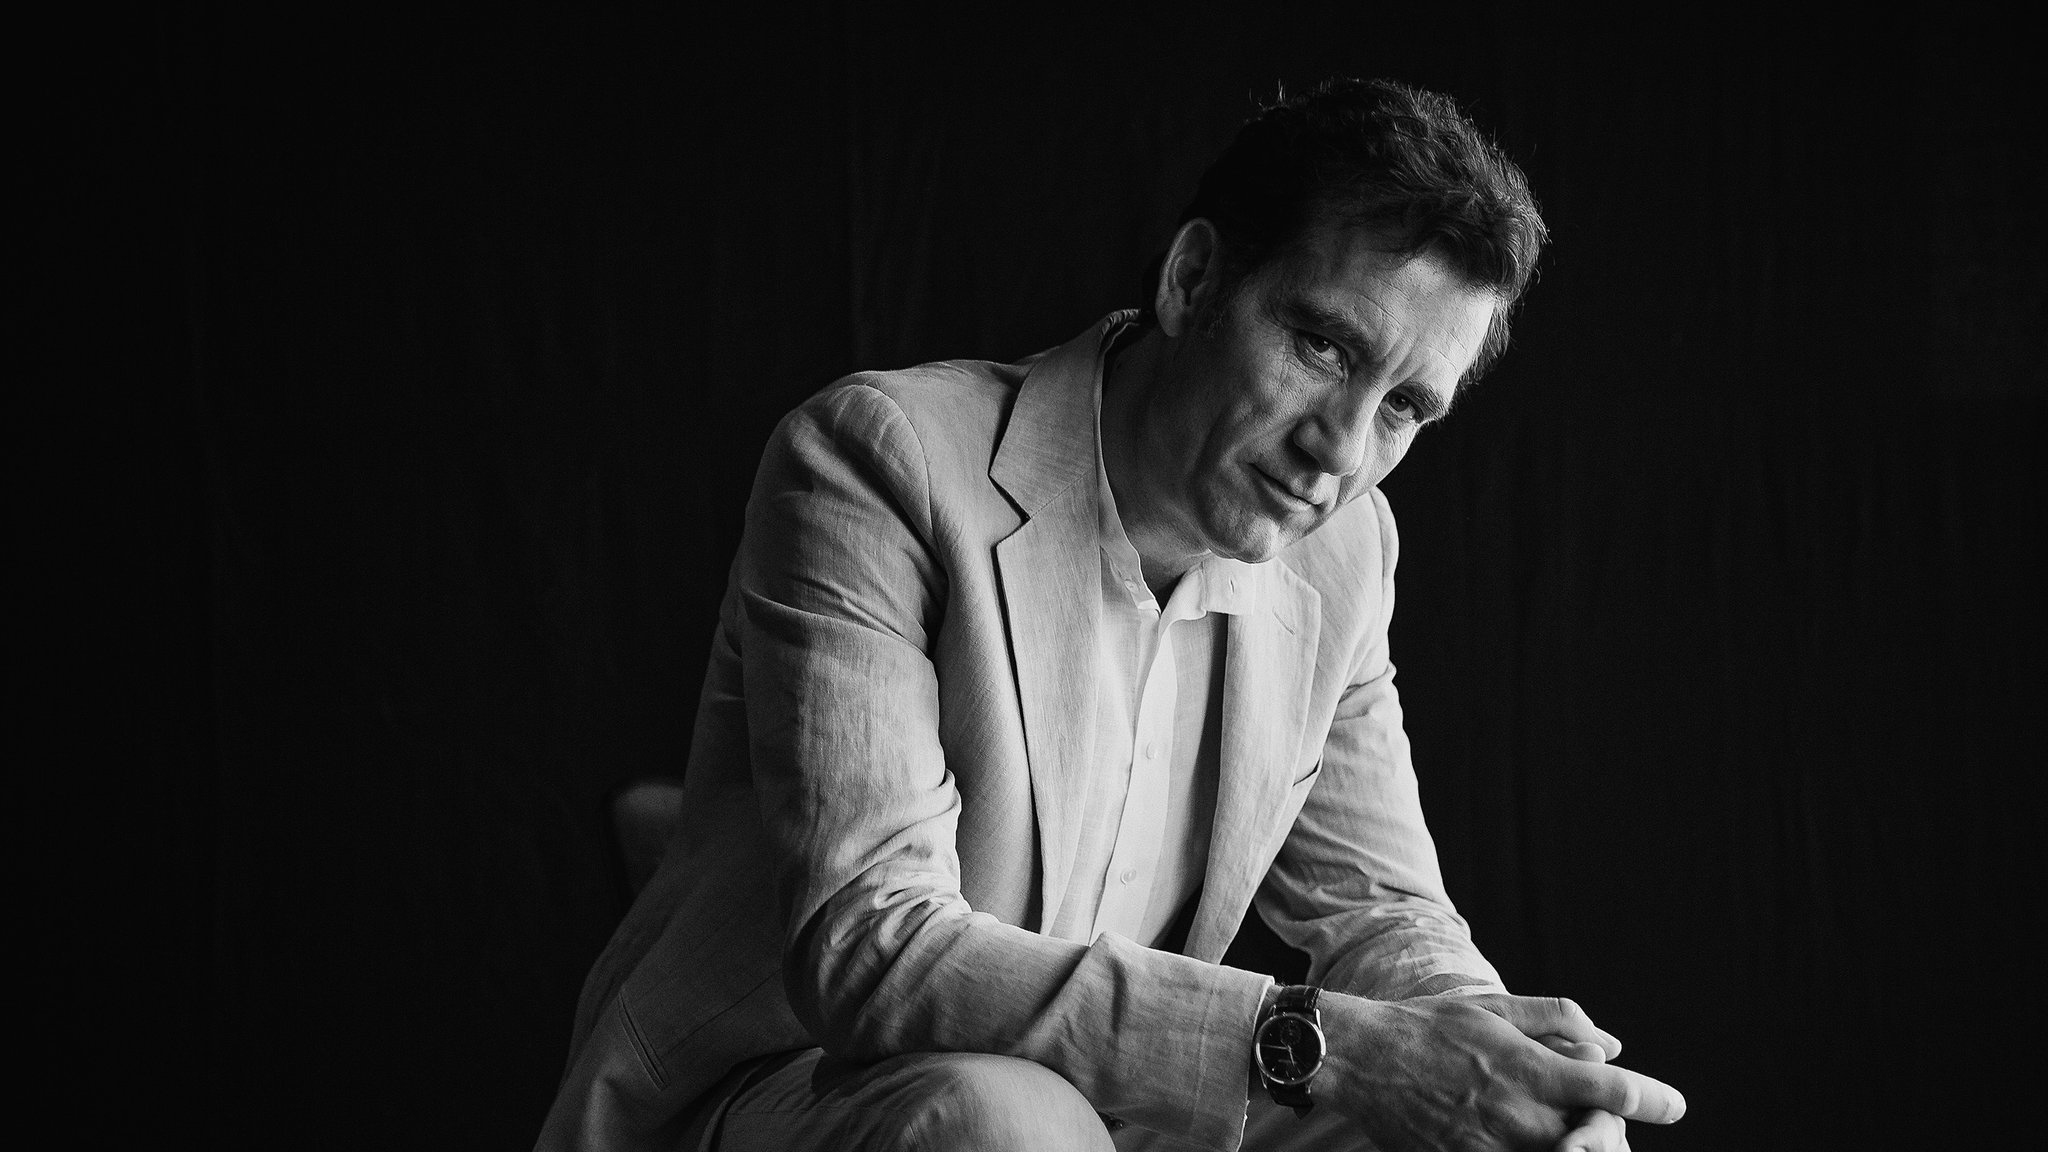 2048x1152 - Clive Owen  Wallpapers 9